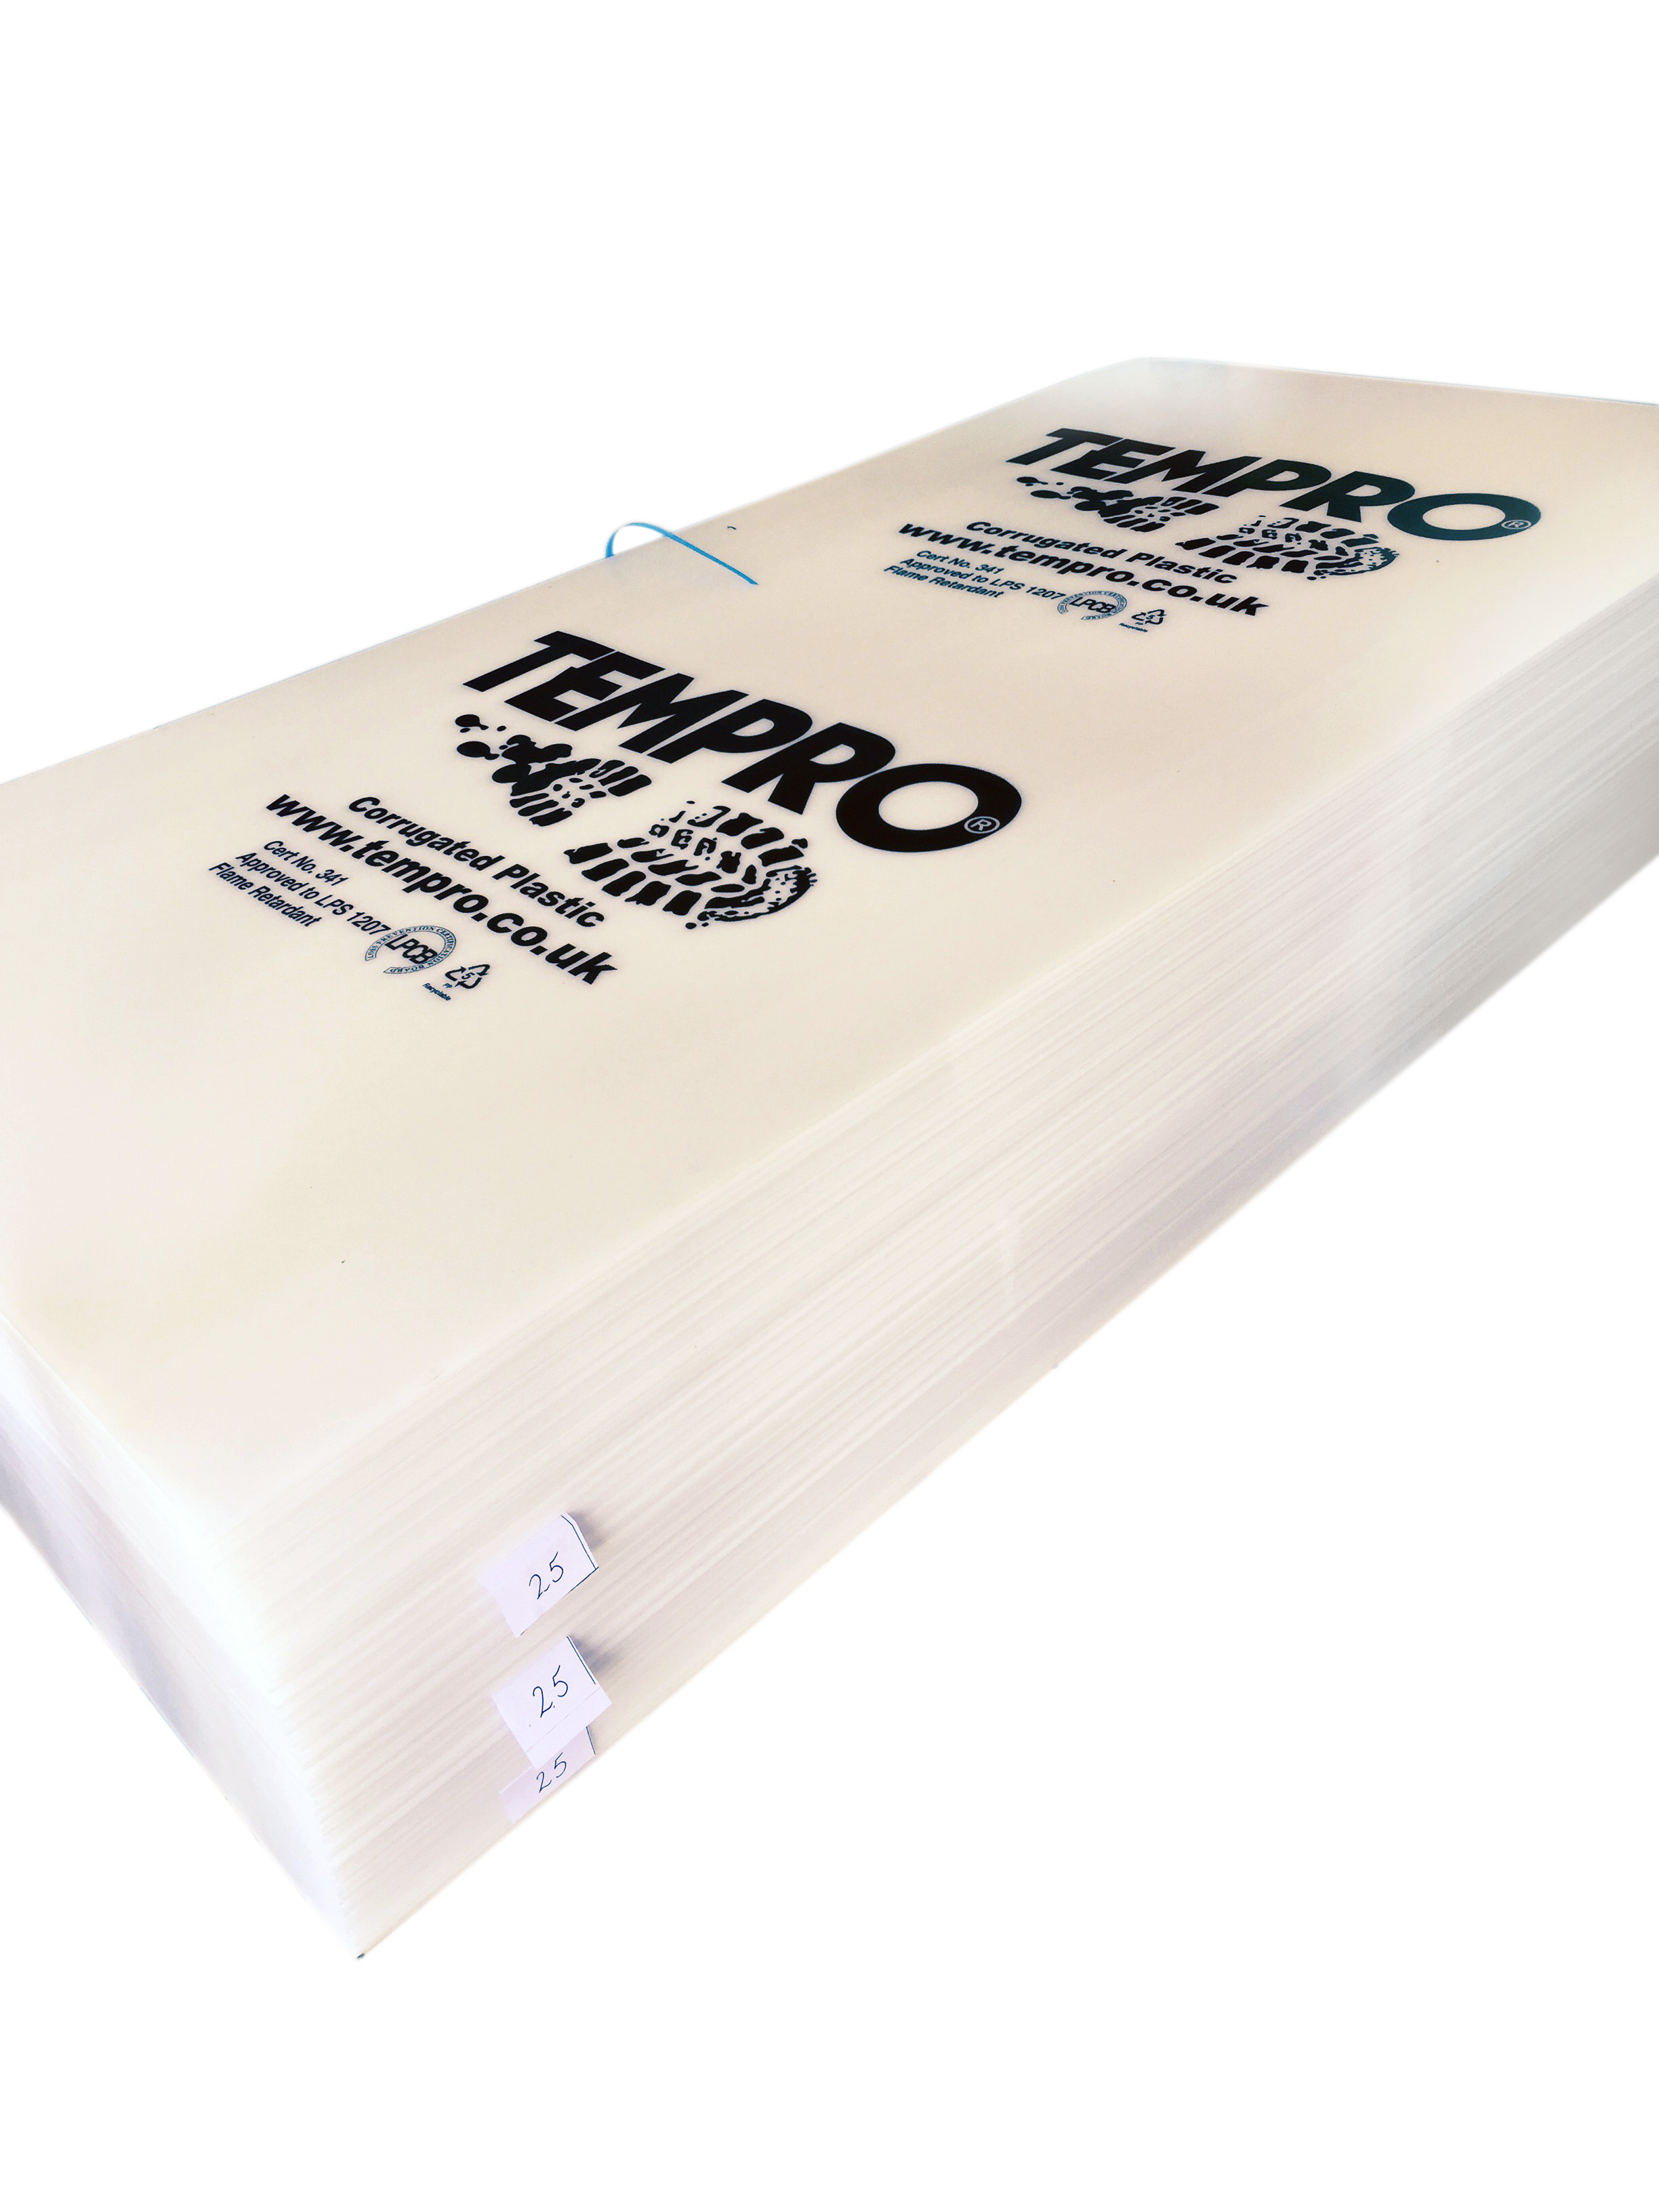 Correx (corex) Corrugated Plastic Sheet Fire Retardant 1.2M x 2.4M x 250gsm (approx 2mm) White